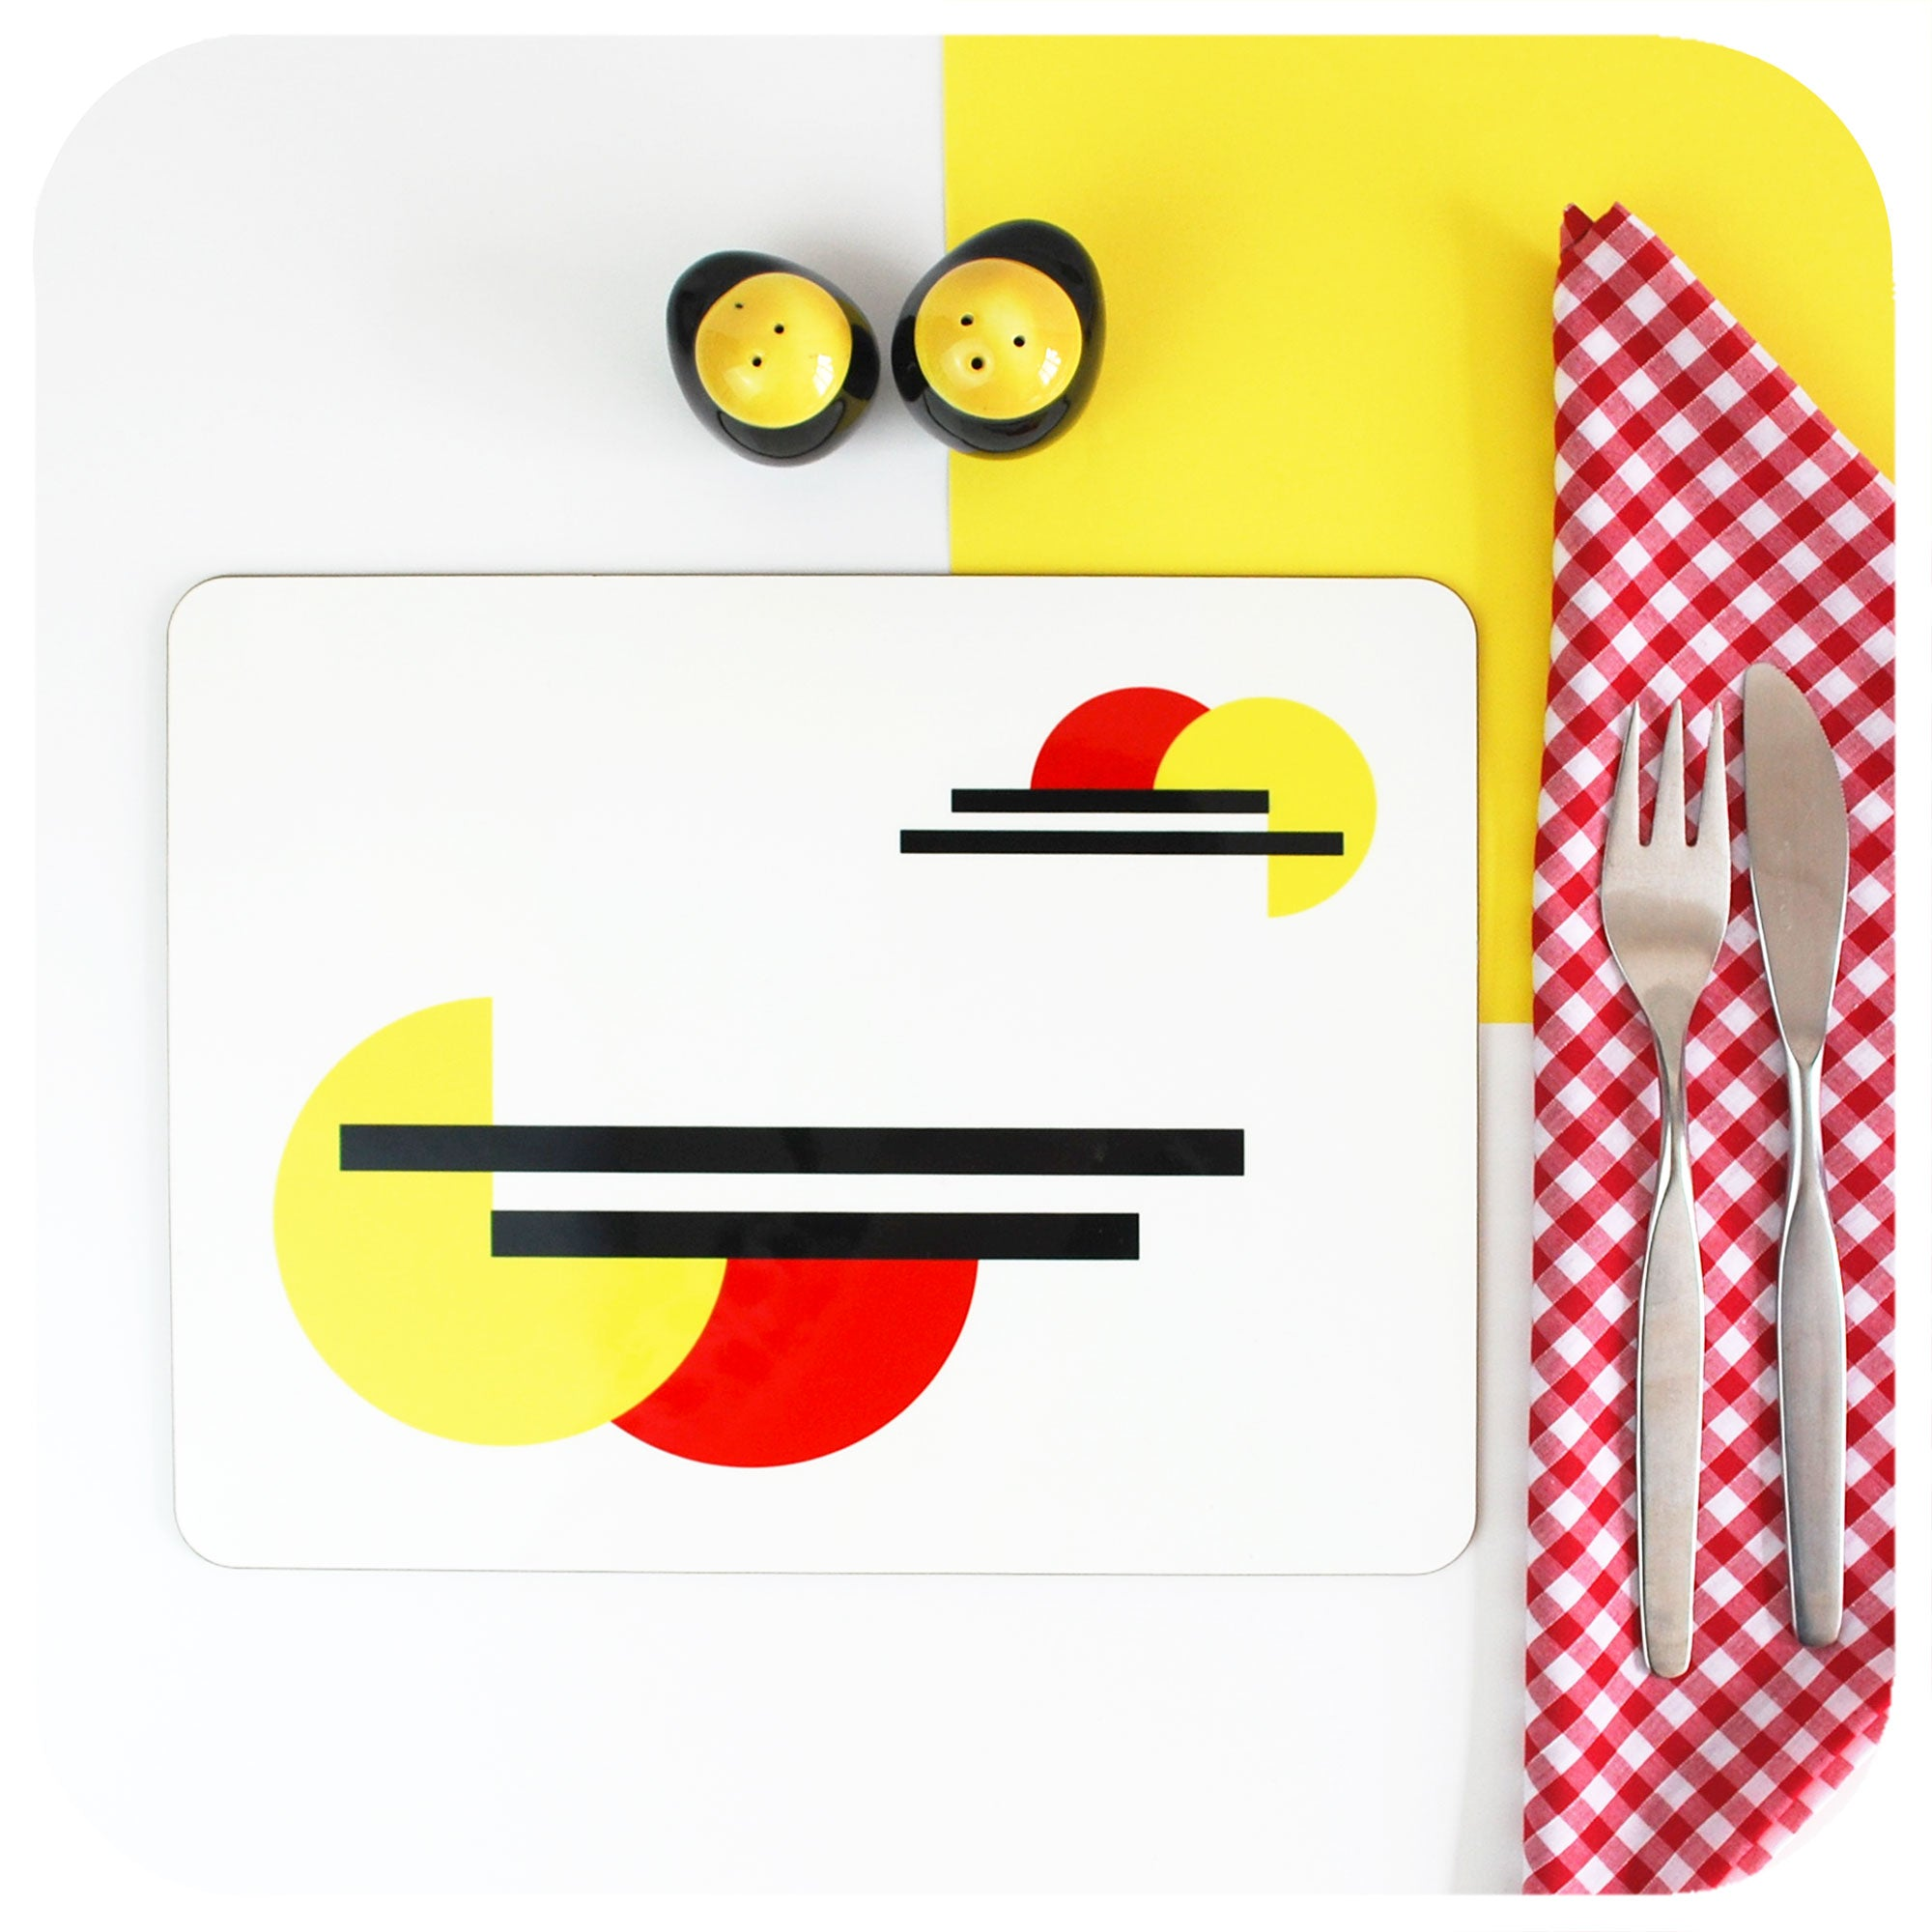 Bauhaus Placemat with cutlery on gingham napkin and mid century cruet set | The Inkabilly Emporium | The Inkabilly Emporium